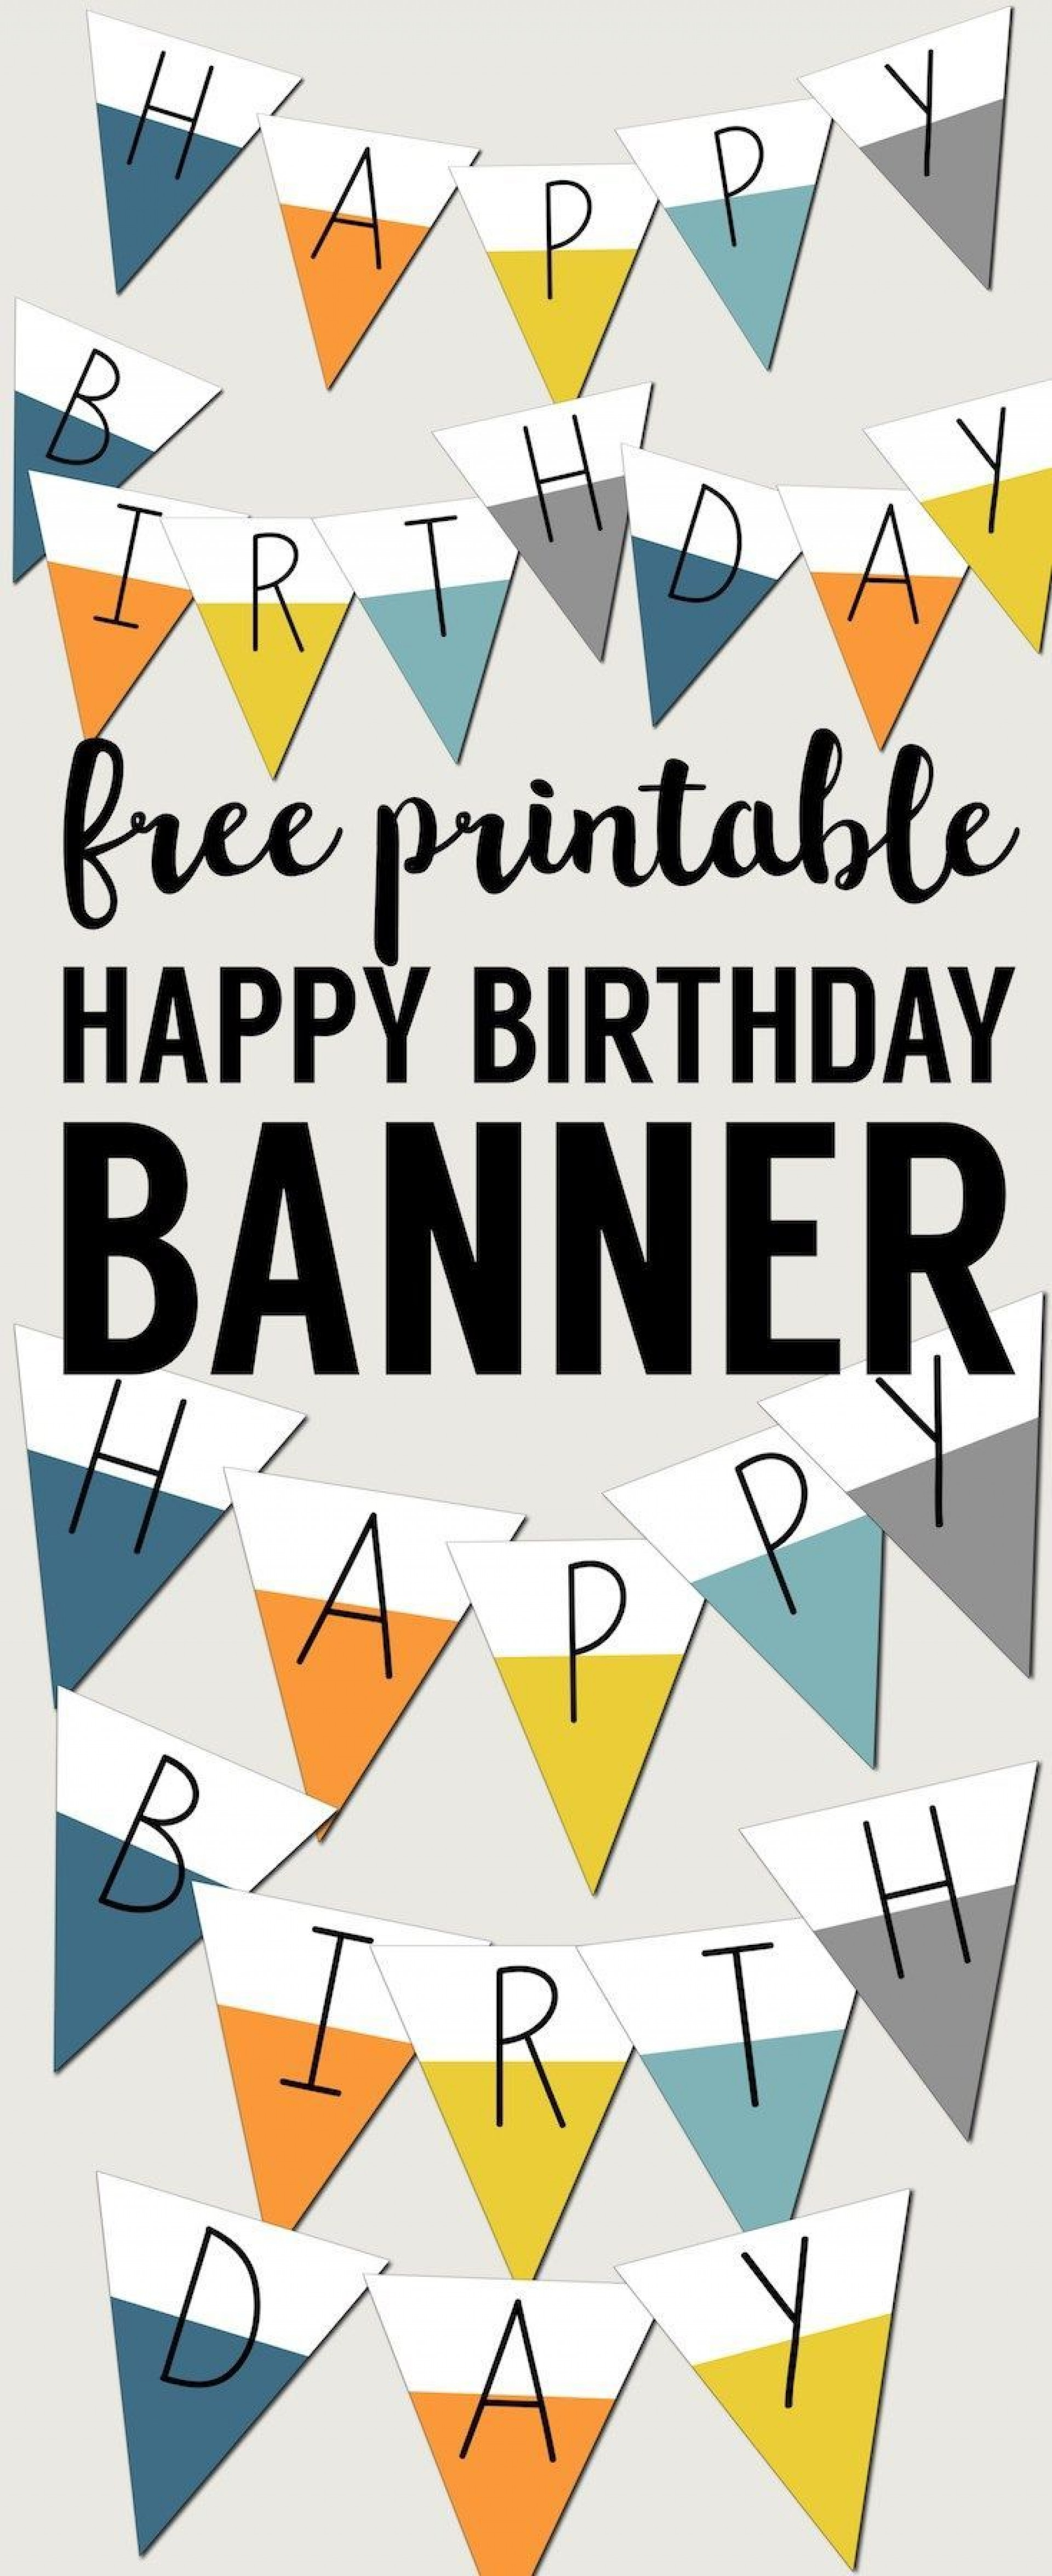 004 Rare Happy Birthday Sign Template Idea  Banner Printable Pdf Free Word1920